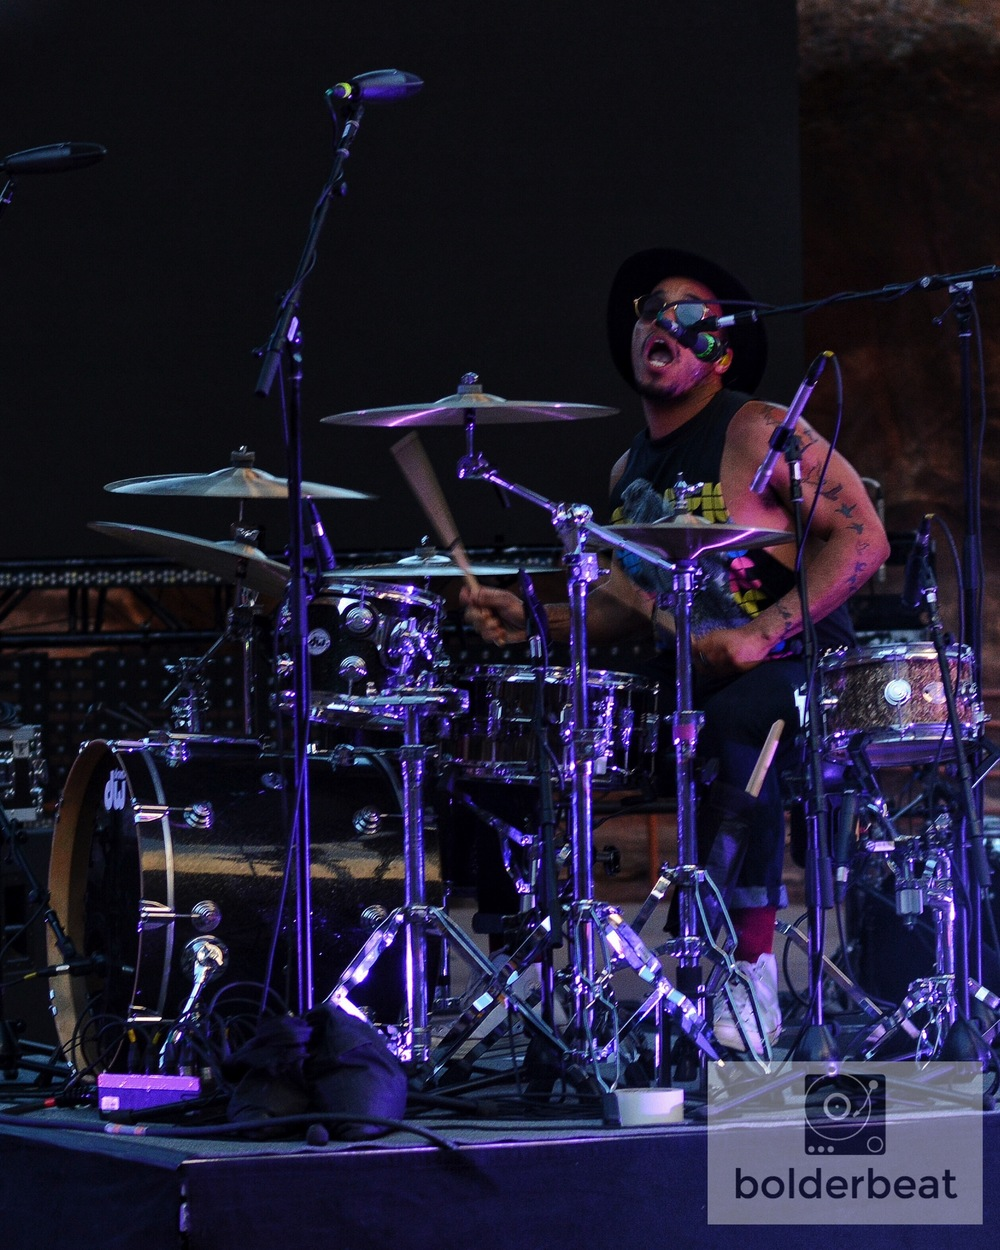 Paak on the kit.